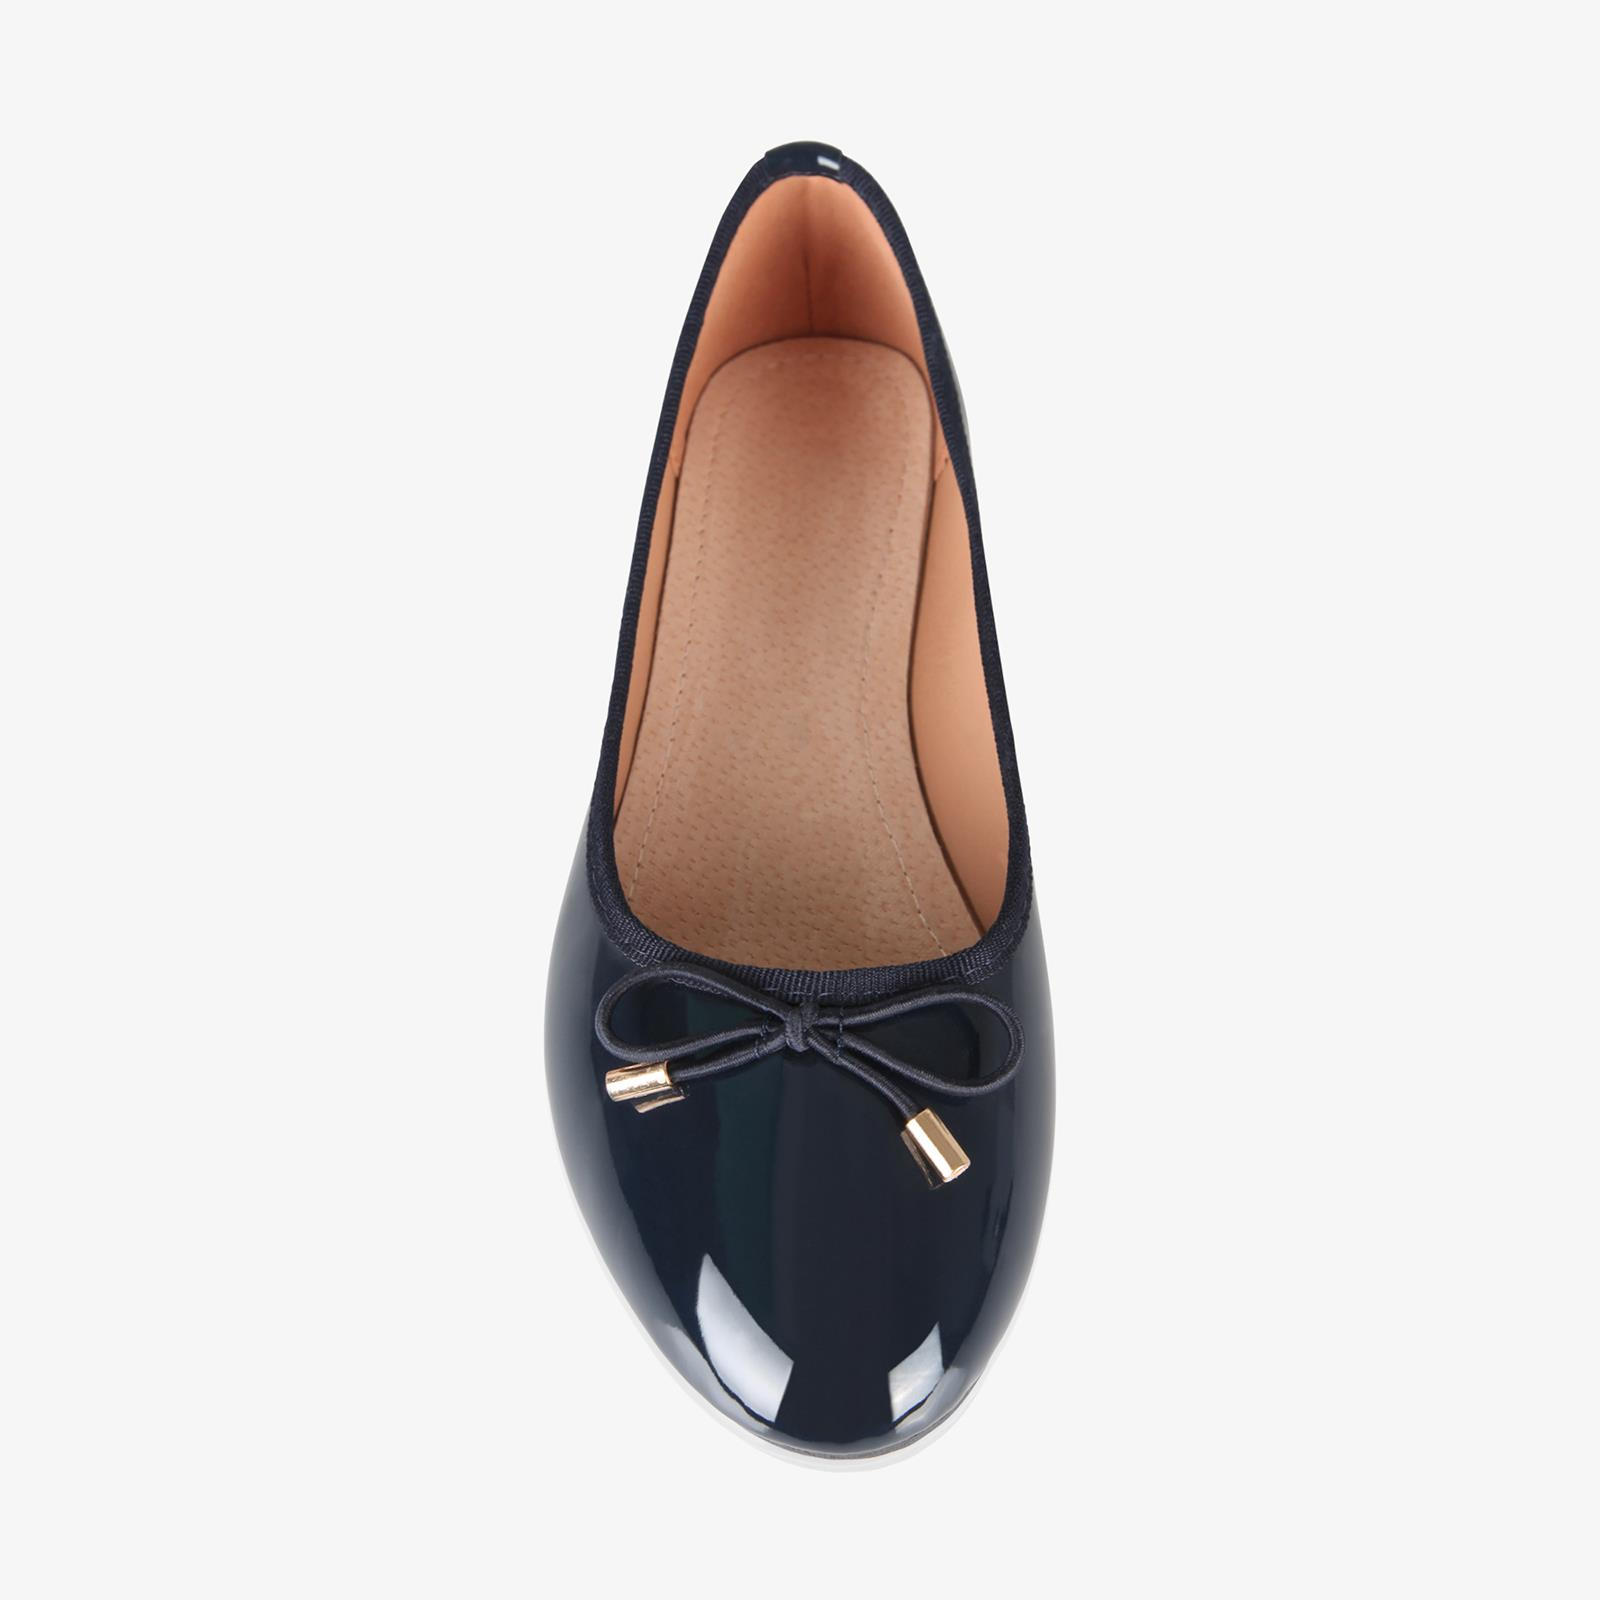 Womens-Ladies-Patent-Flat-Shoes-Ballerina-Ballet-Dolly-Court-Pumps-Slip-On-Bow thumbnail 6